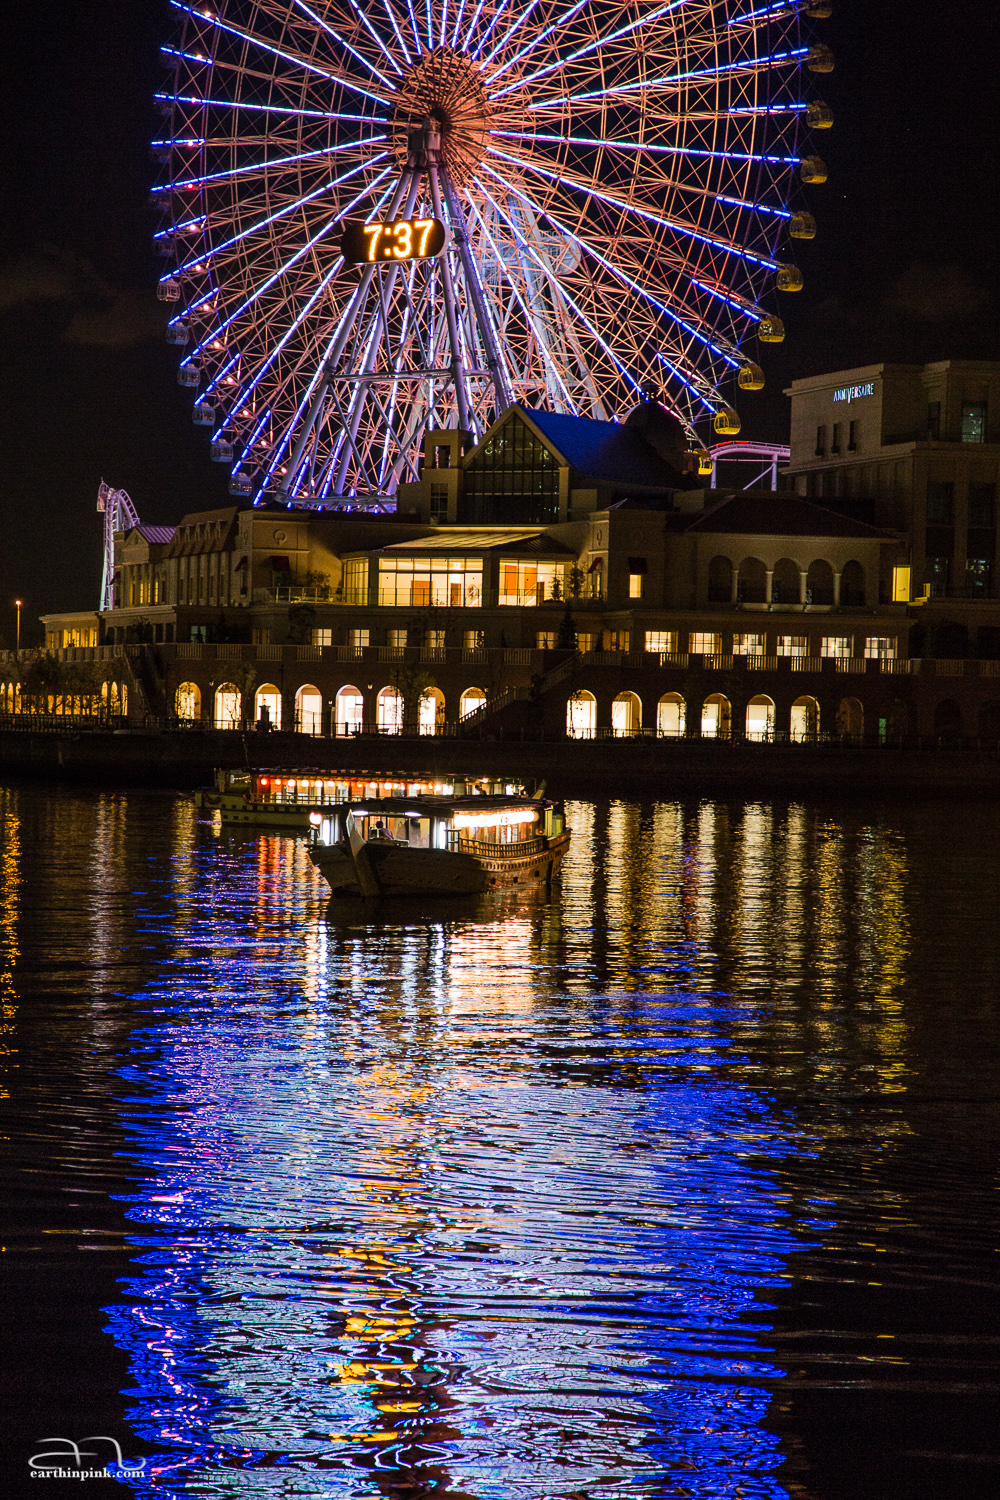 A boat riding on the reflection of the giant Ferris wheel at the Yokohama Cosmo World.